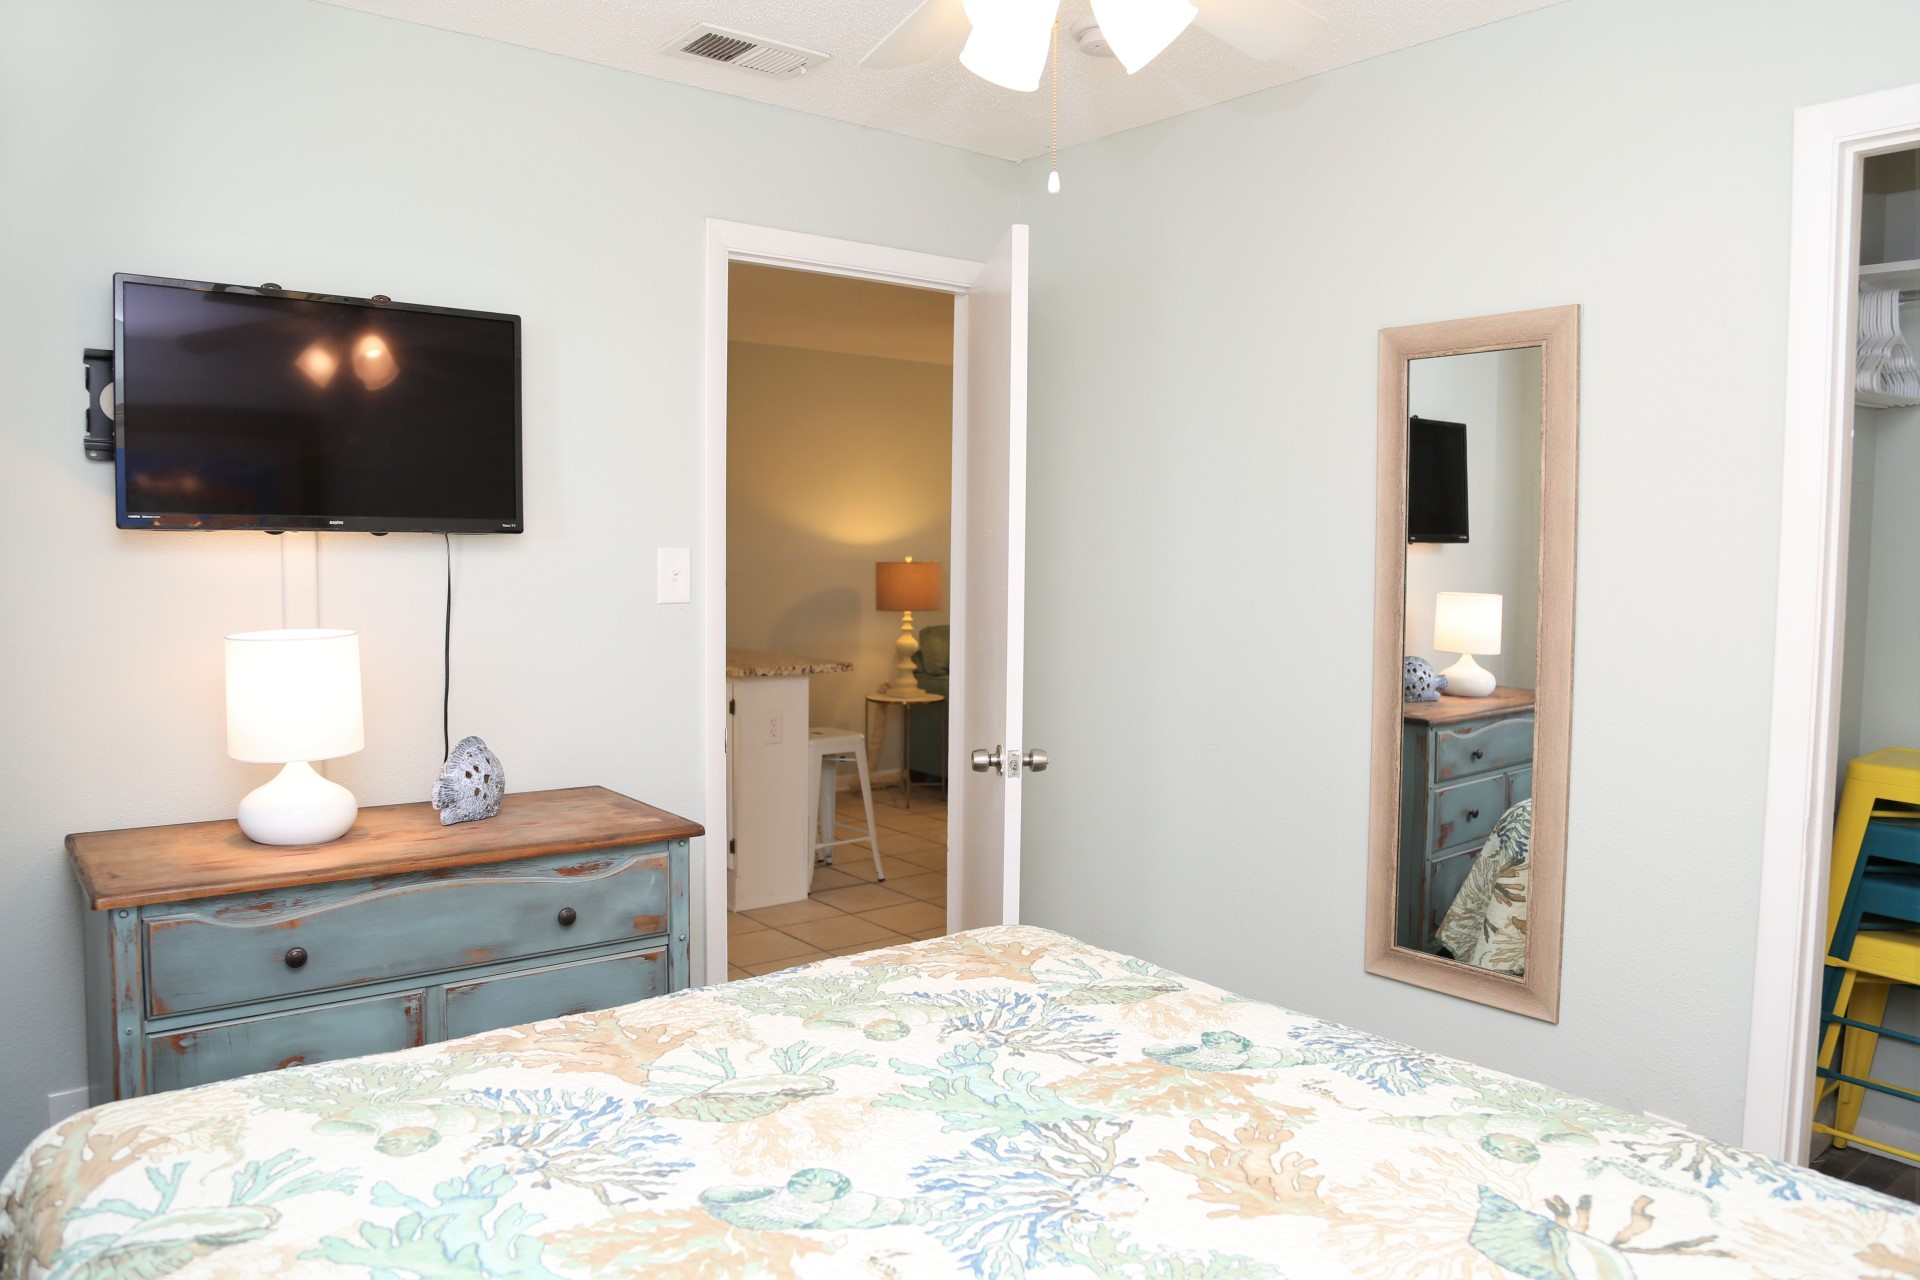 The second bedroom includes a dresser, cable TV, and closet